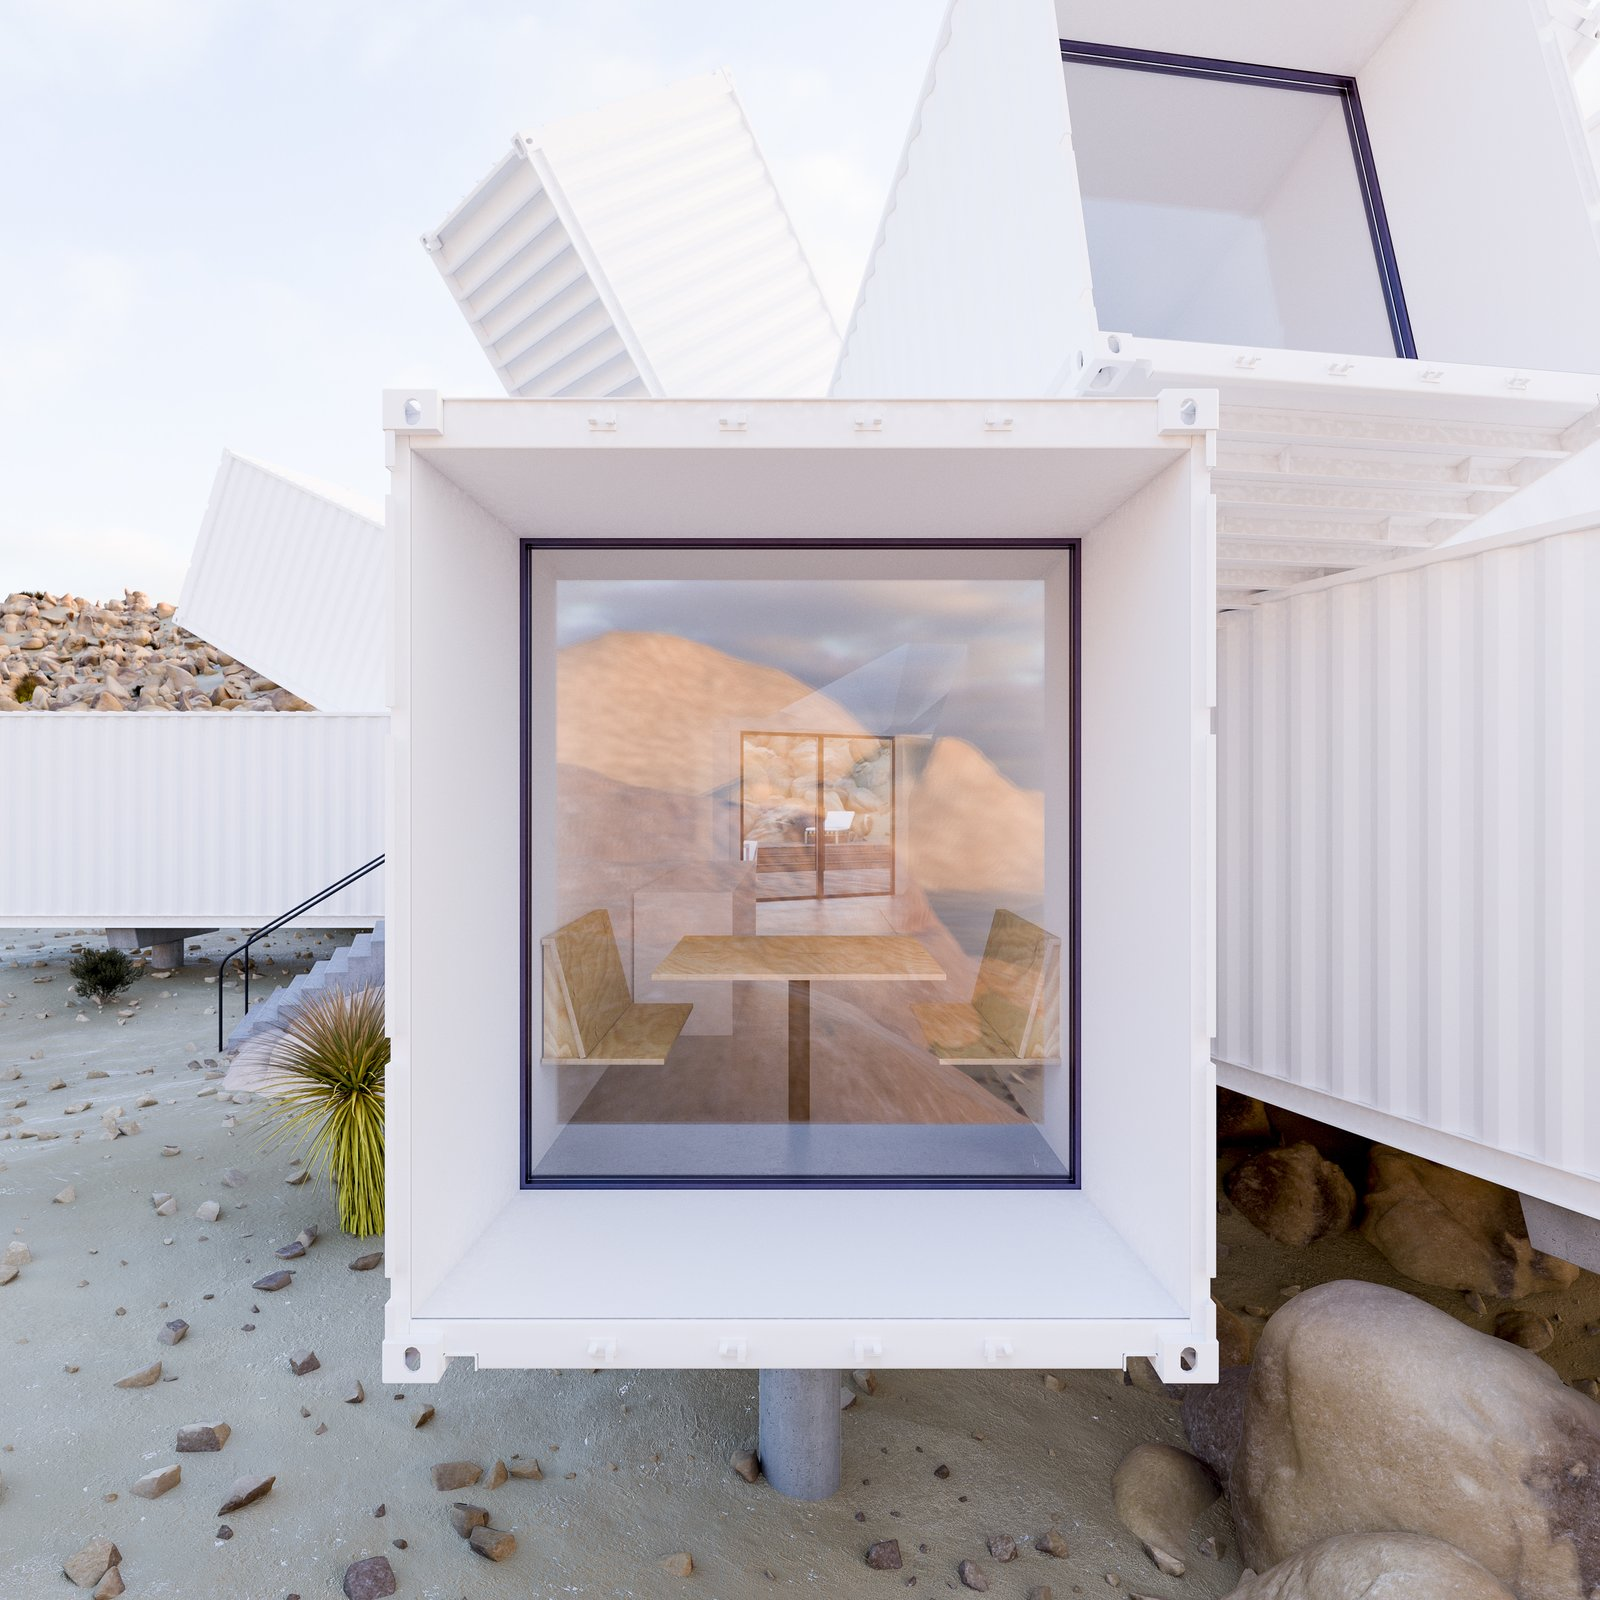 Windows  Photos from A Film Producer's Desert Retreat Is a Starburst of Shipping Containers